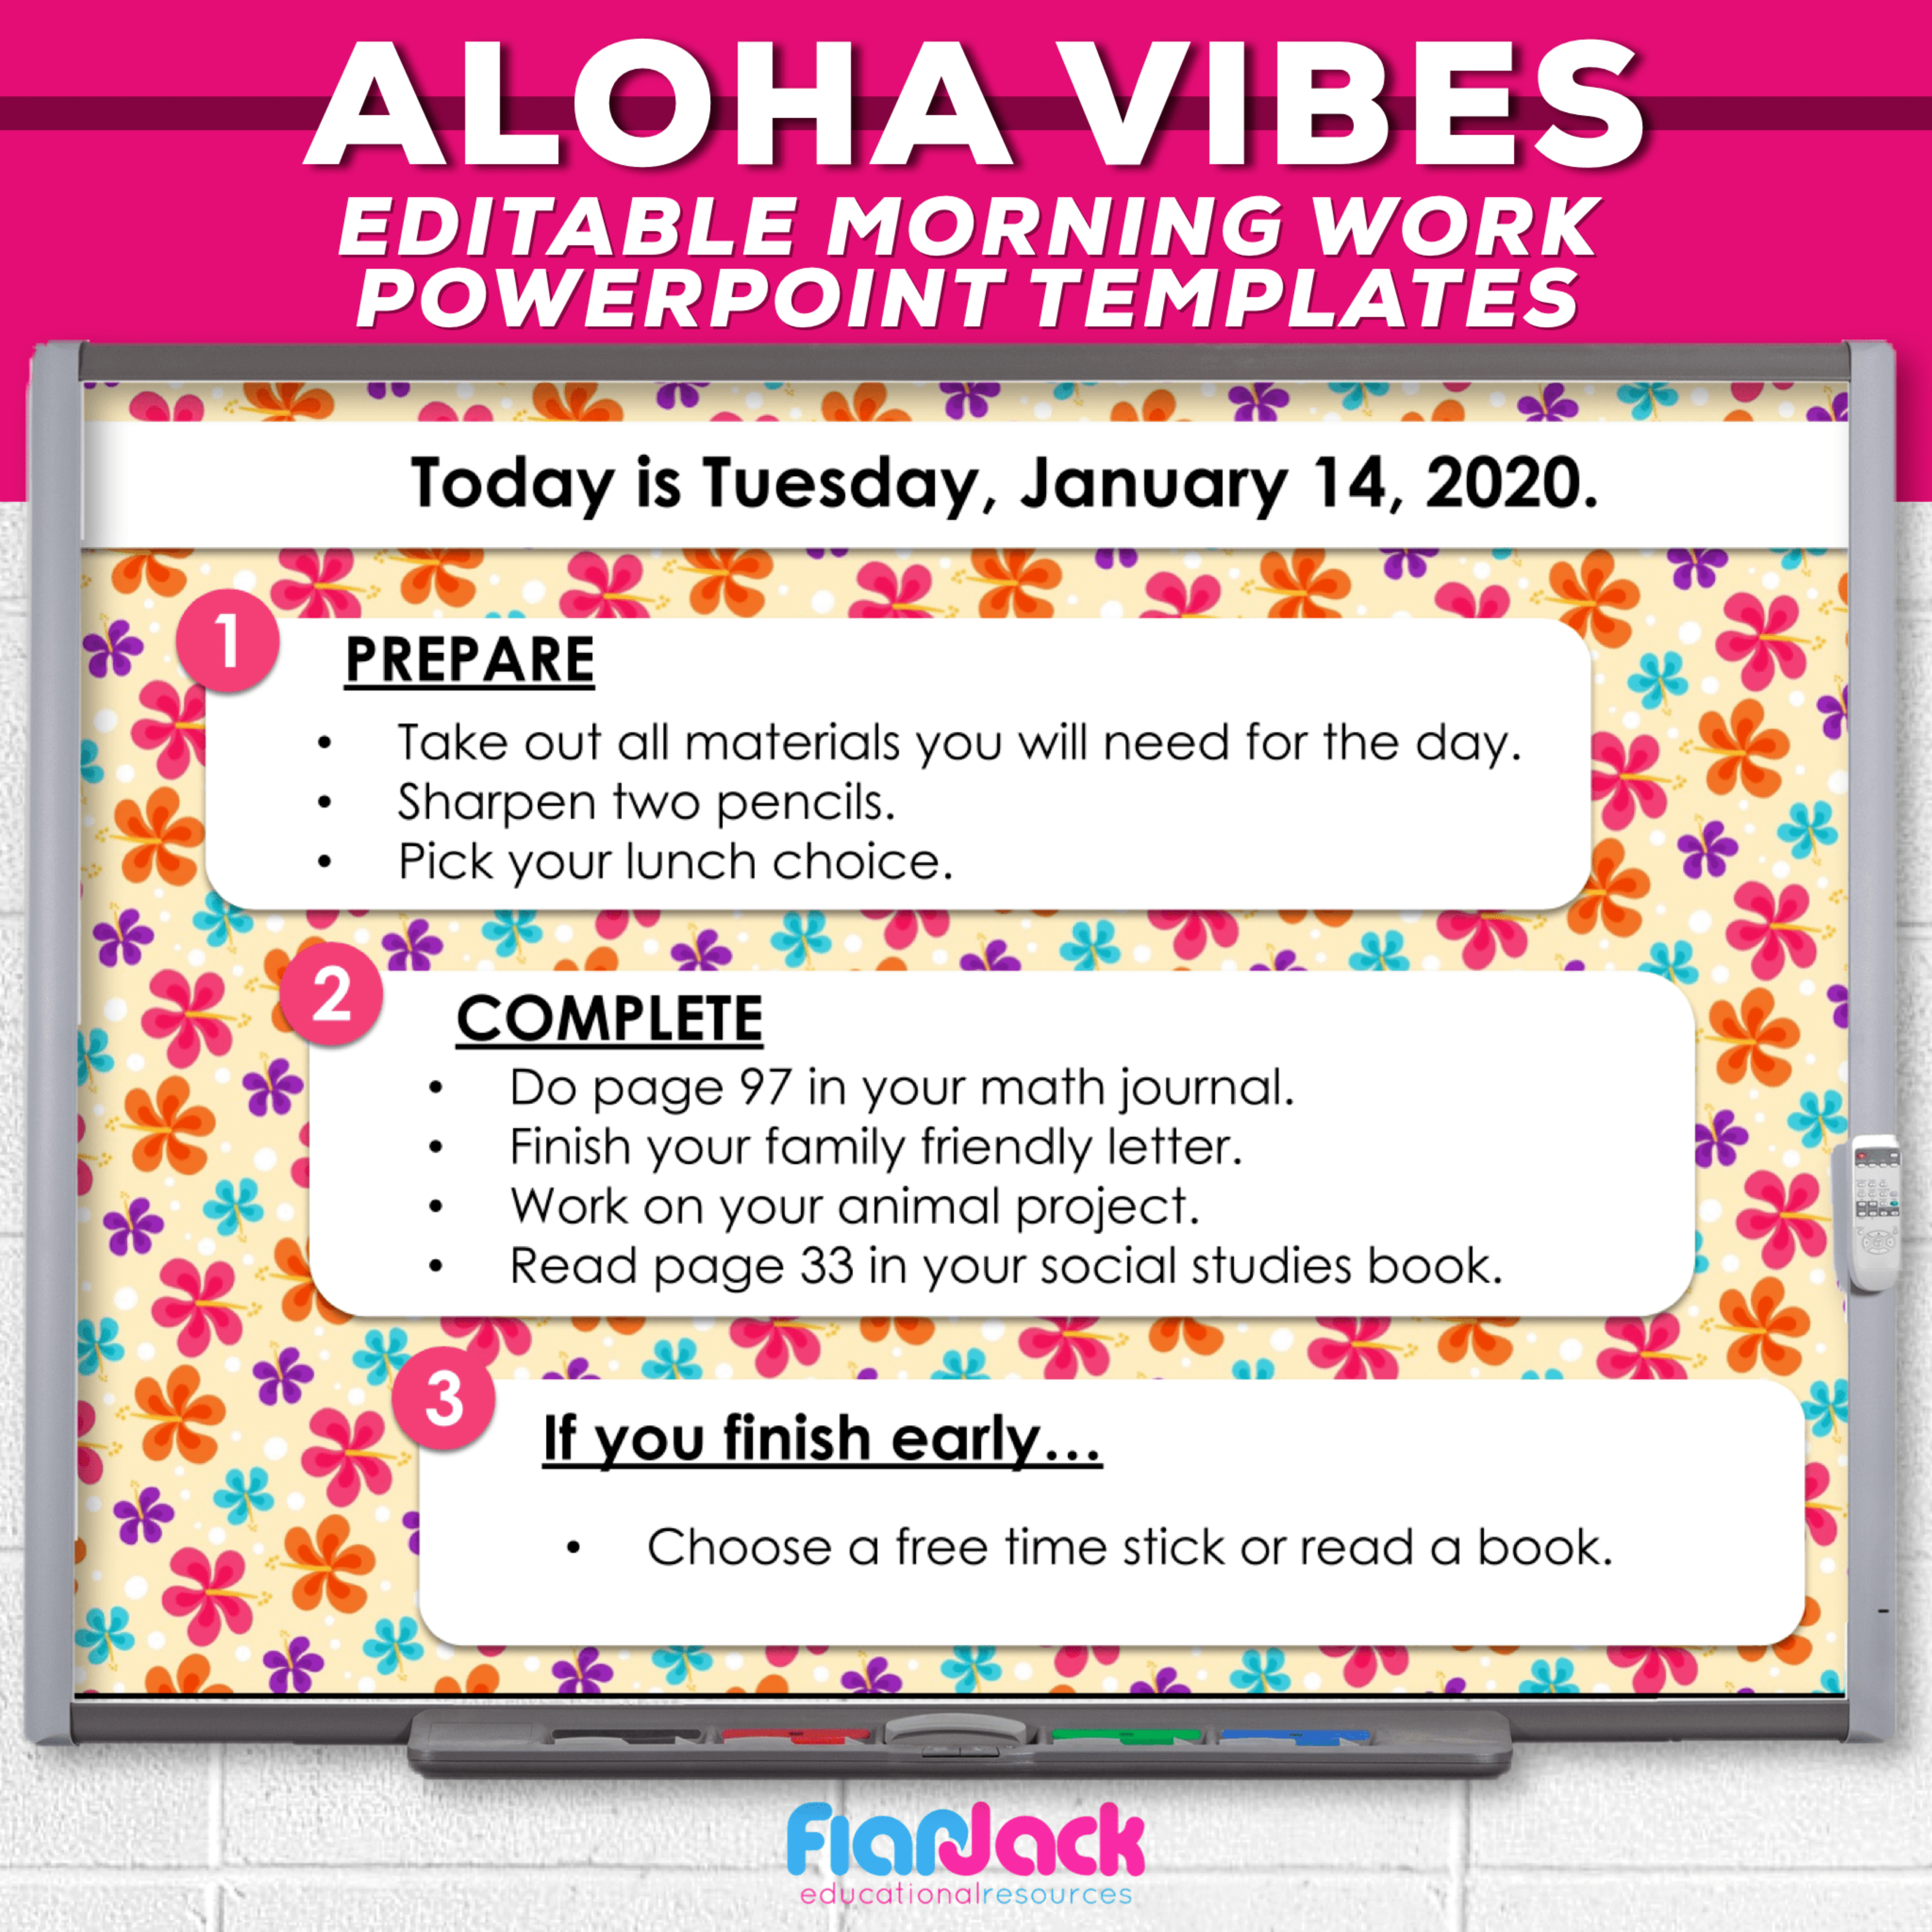 Editable PowerPoint Templates | ❀Aloha Vibes❀